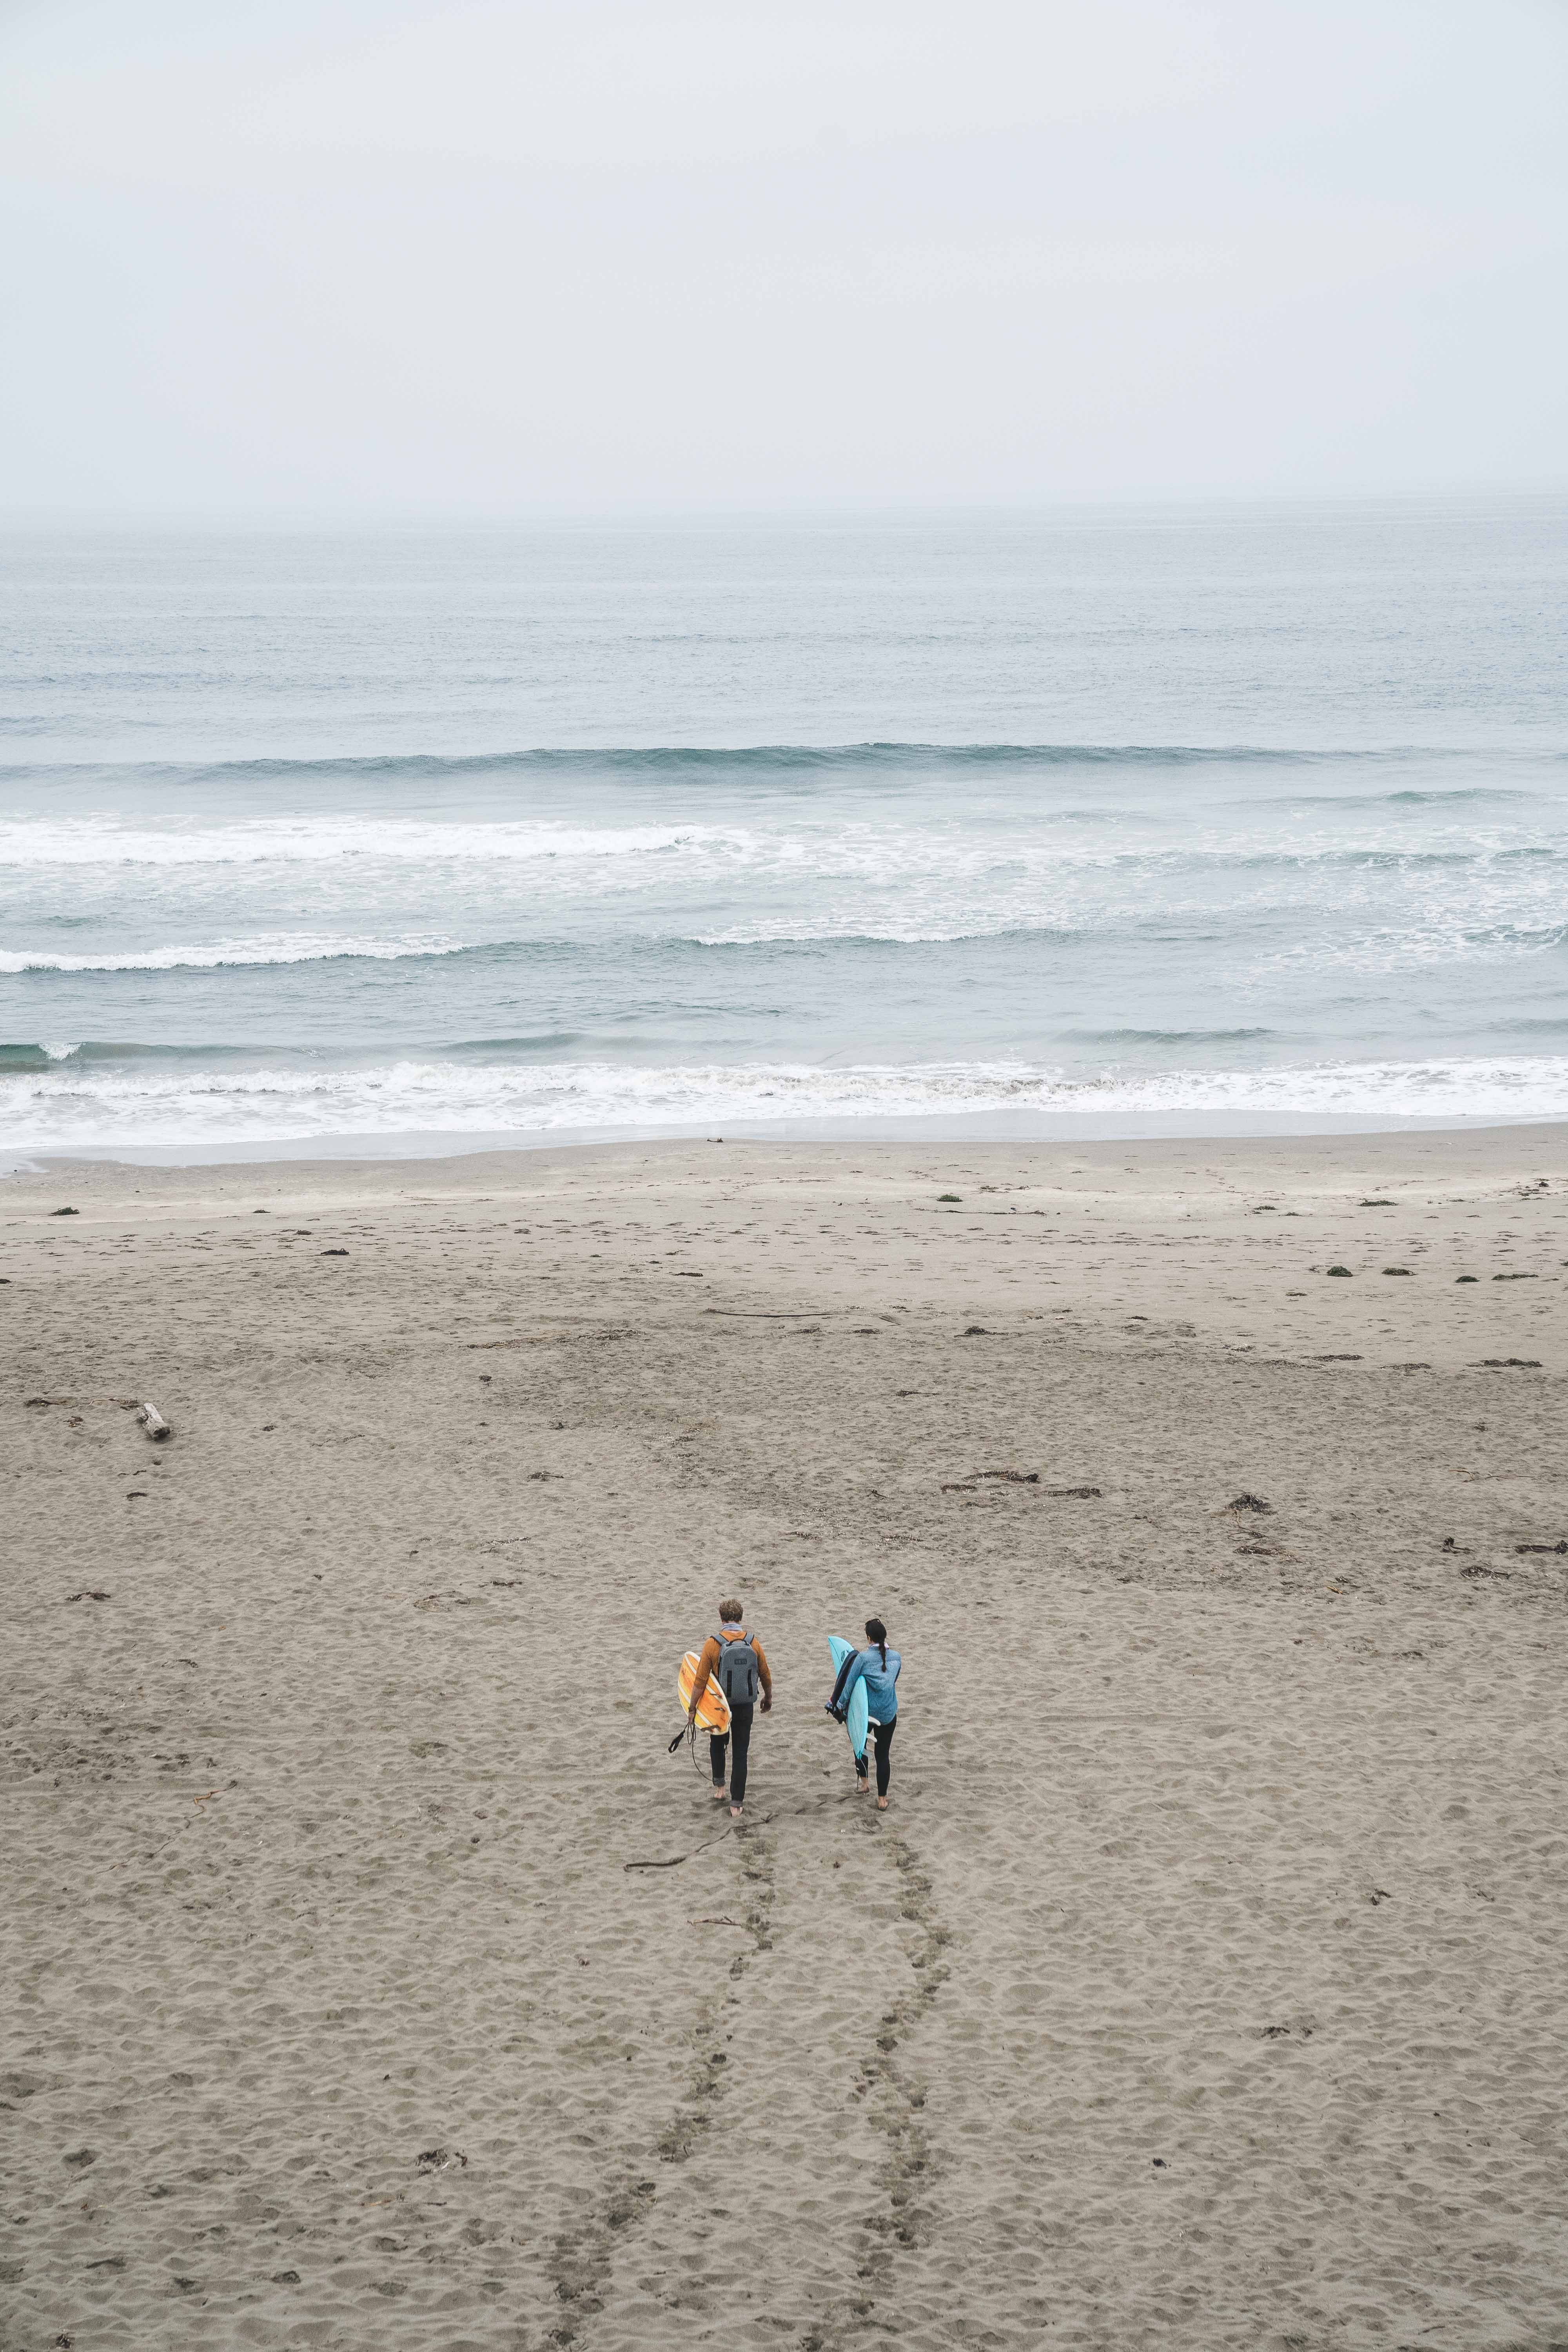 couple arriving at beach surfing